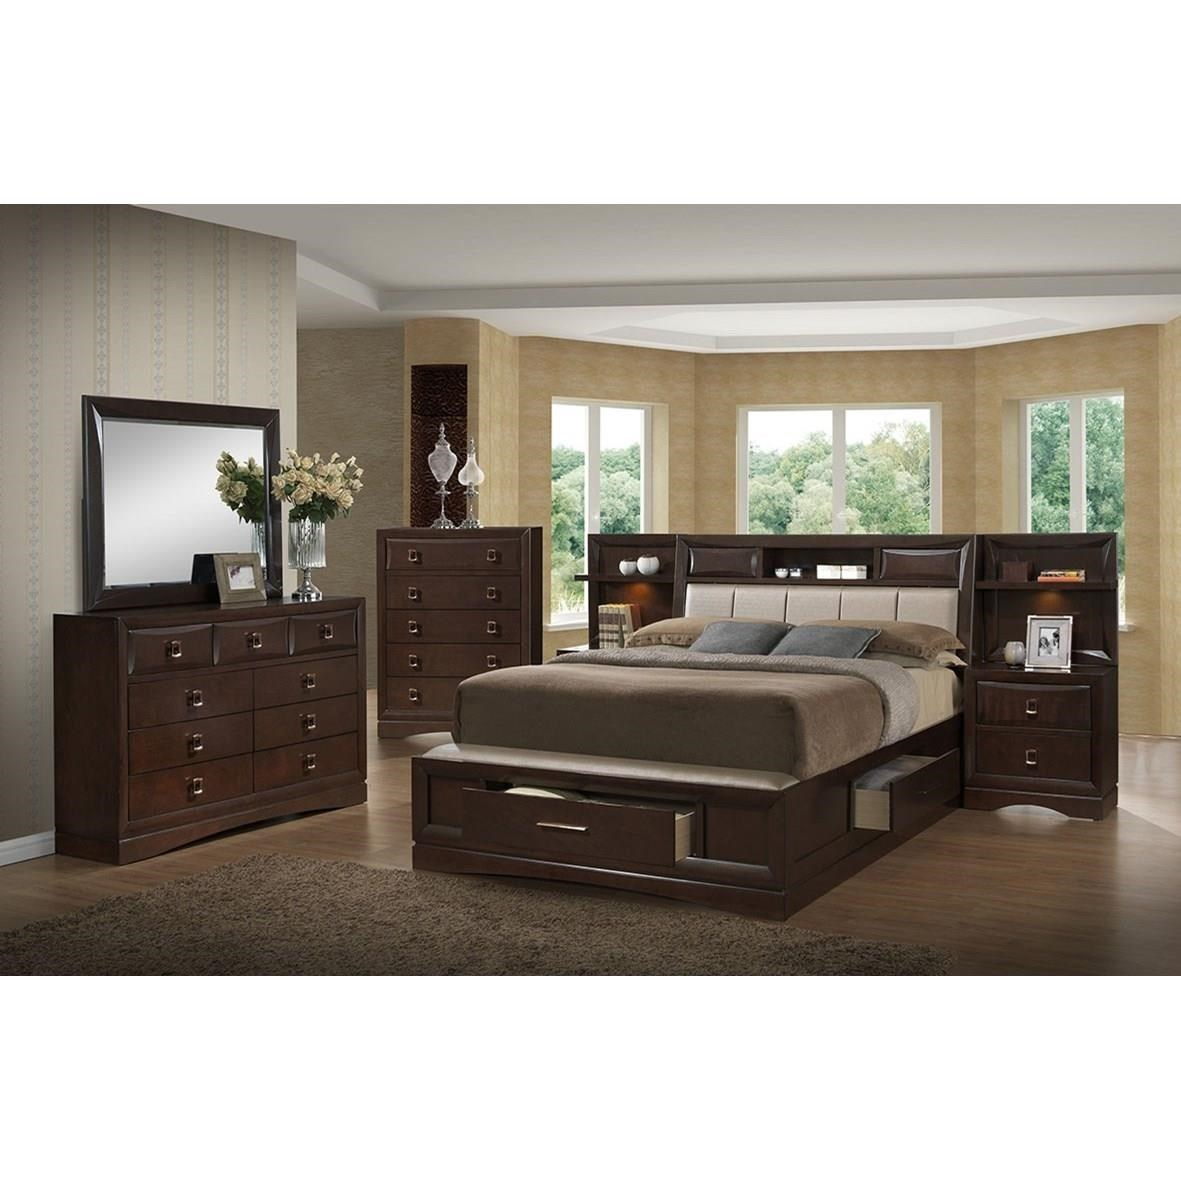 Holland House FranklinQueen 4 Piece Bedroom Group